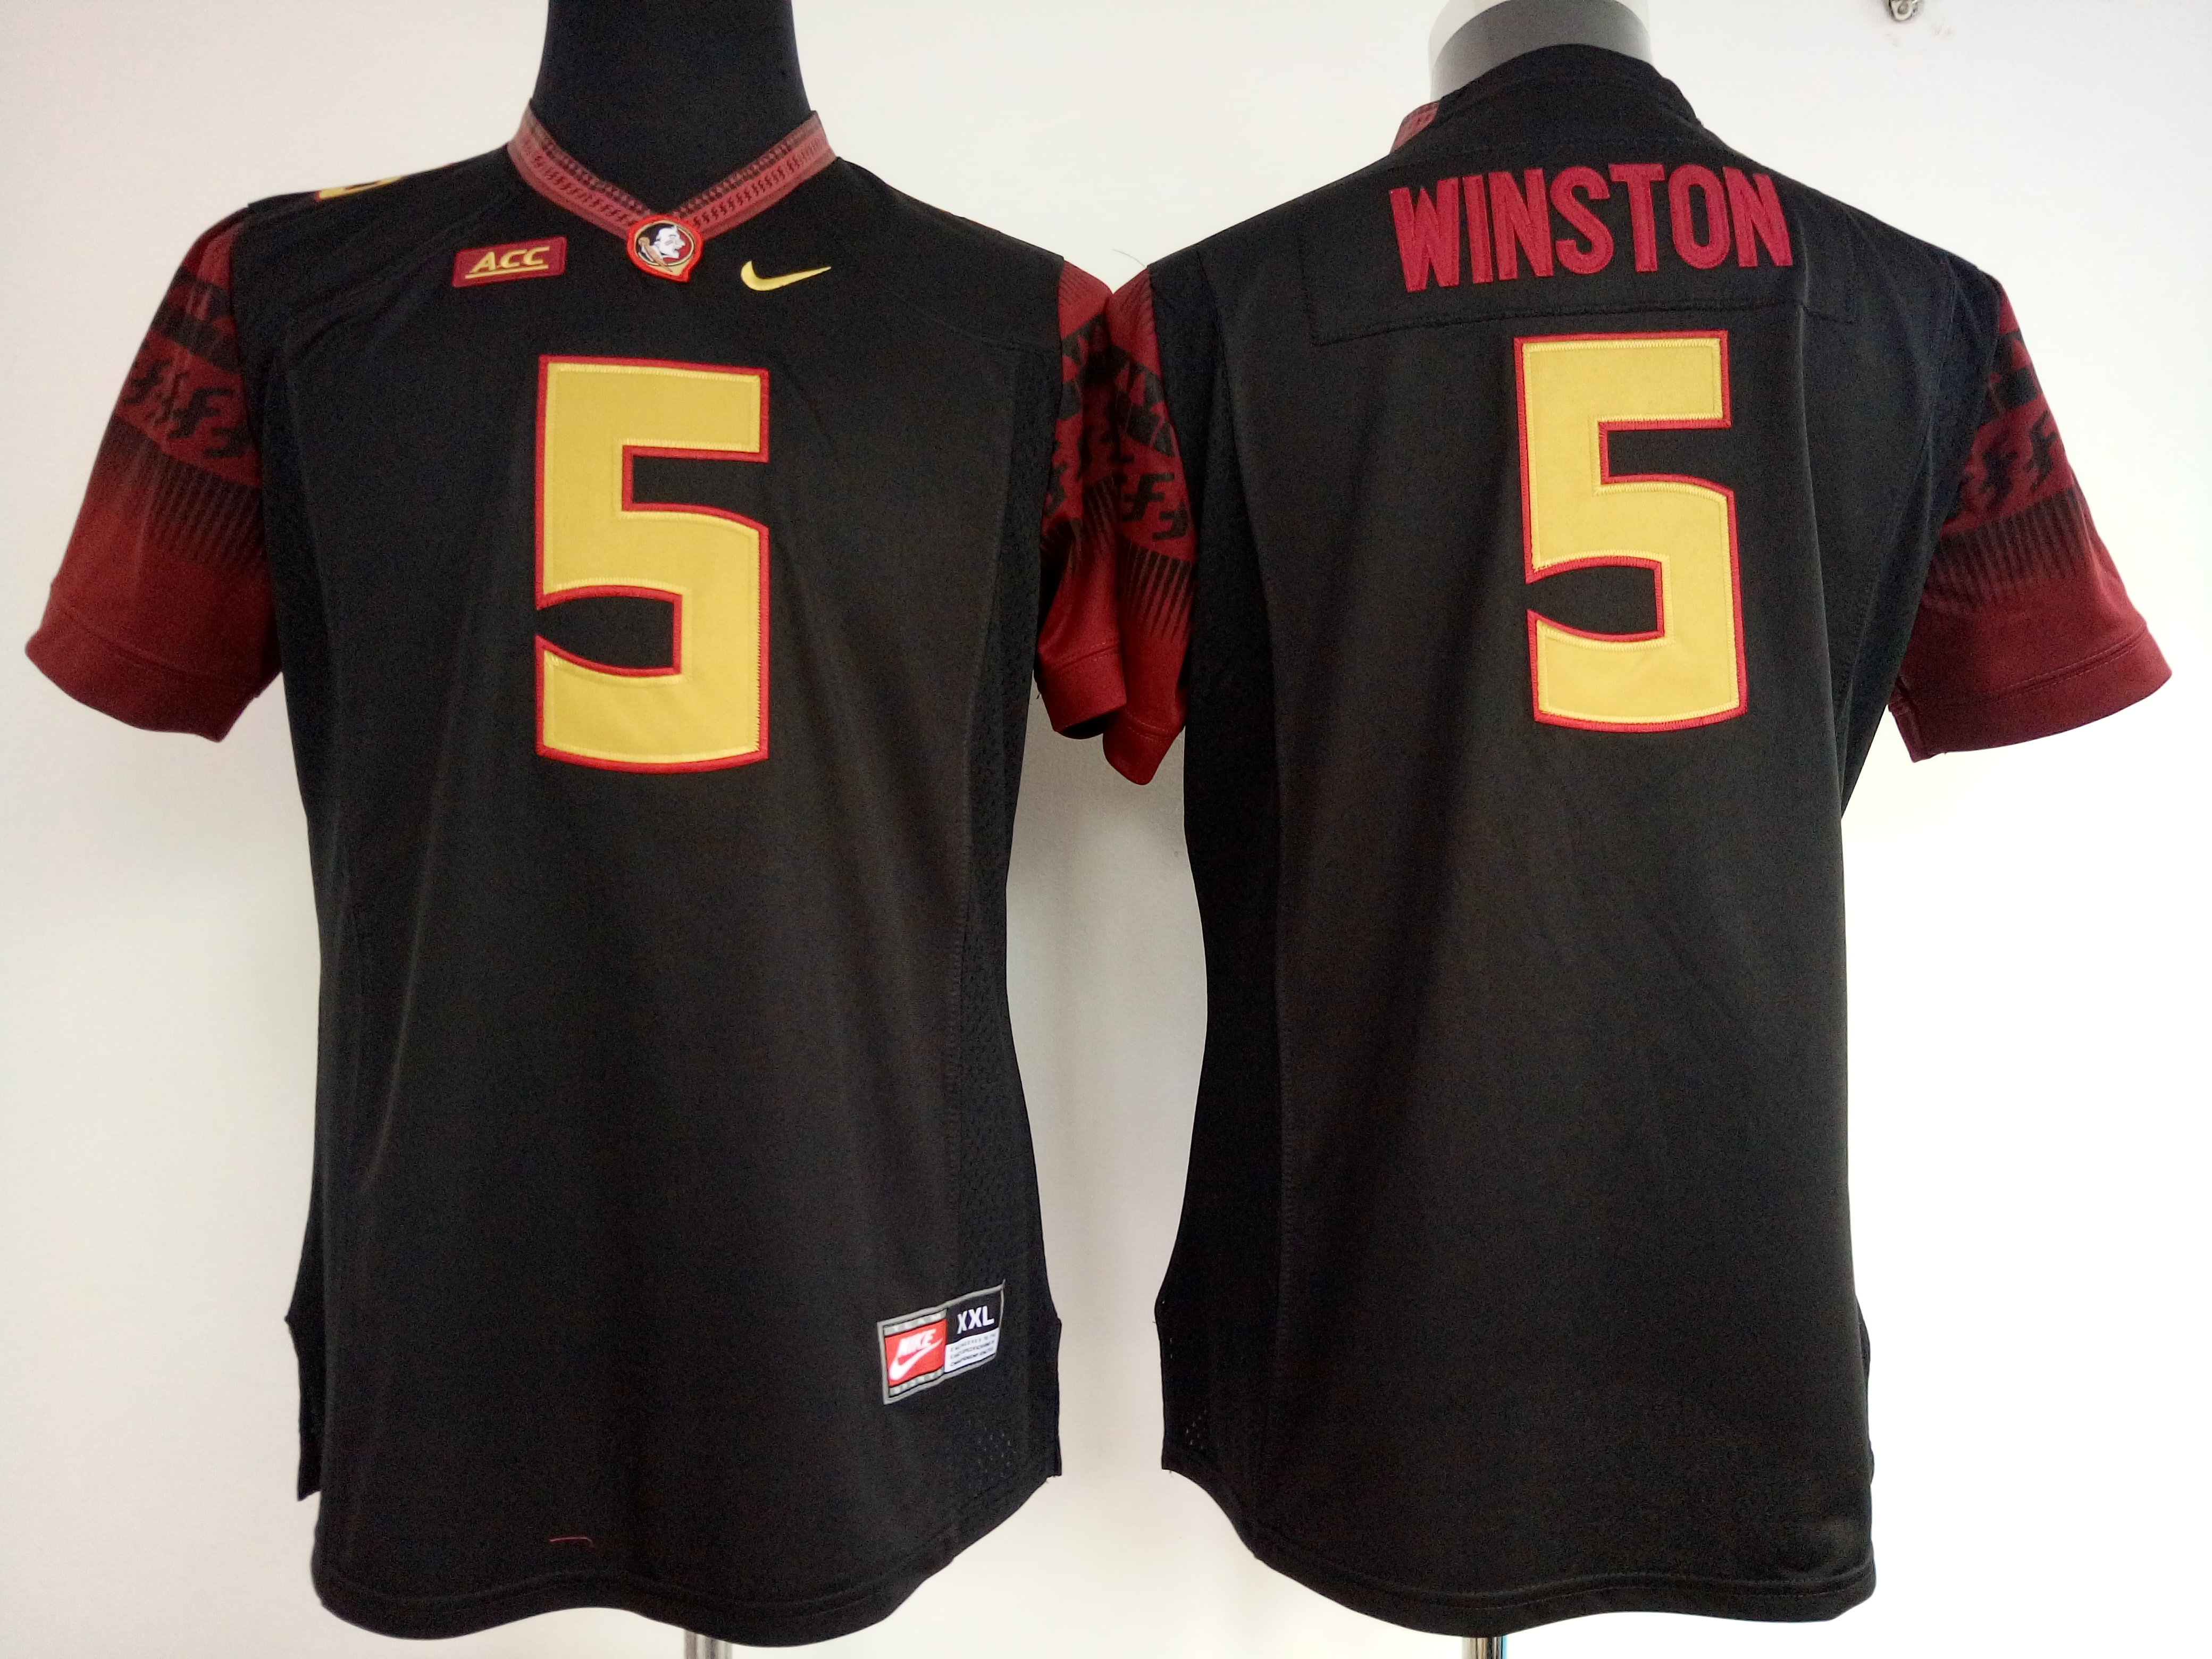 NCAA Womens Florida State Seminoles Black 5 Winston jerseys